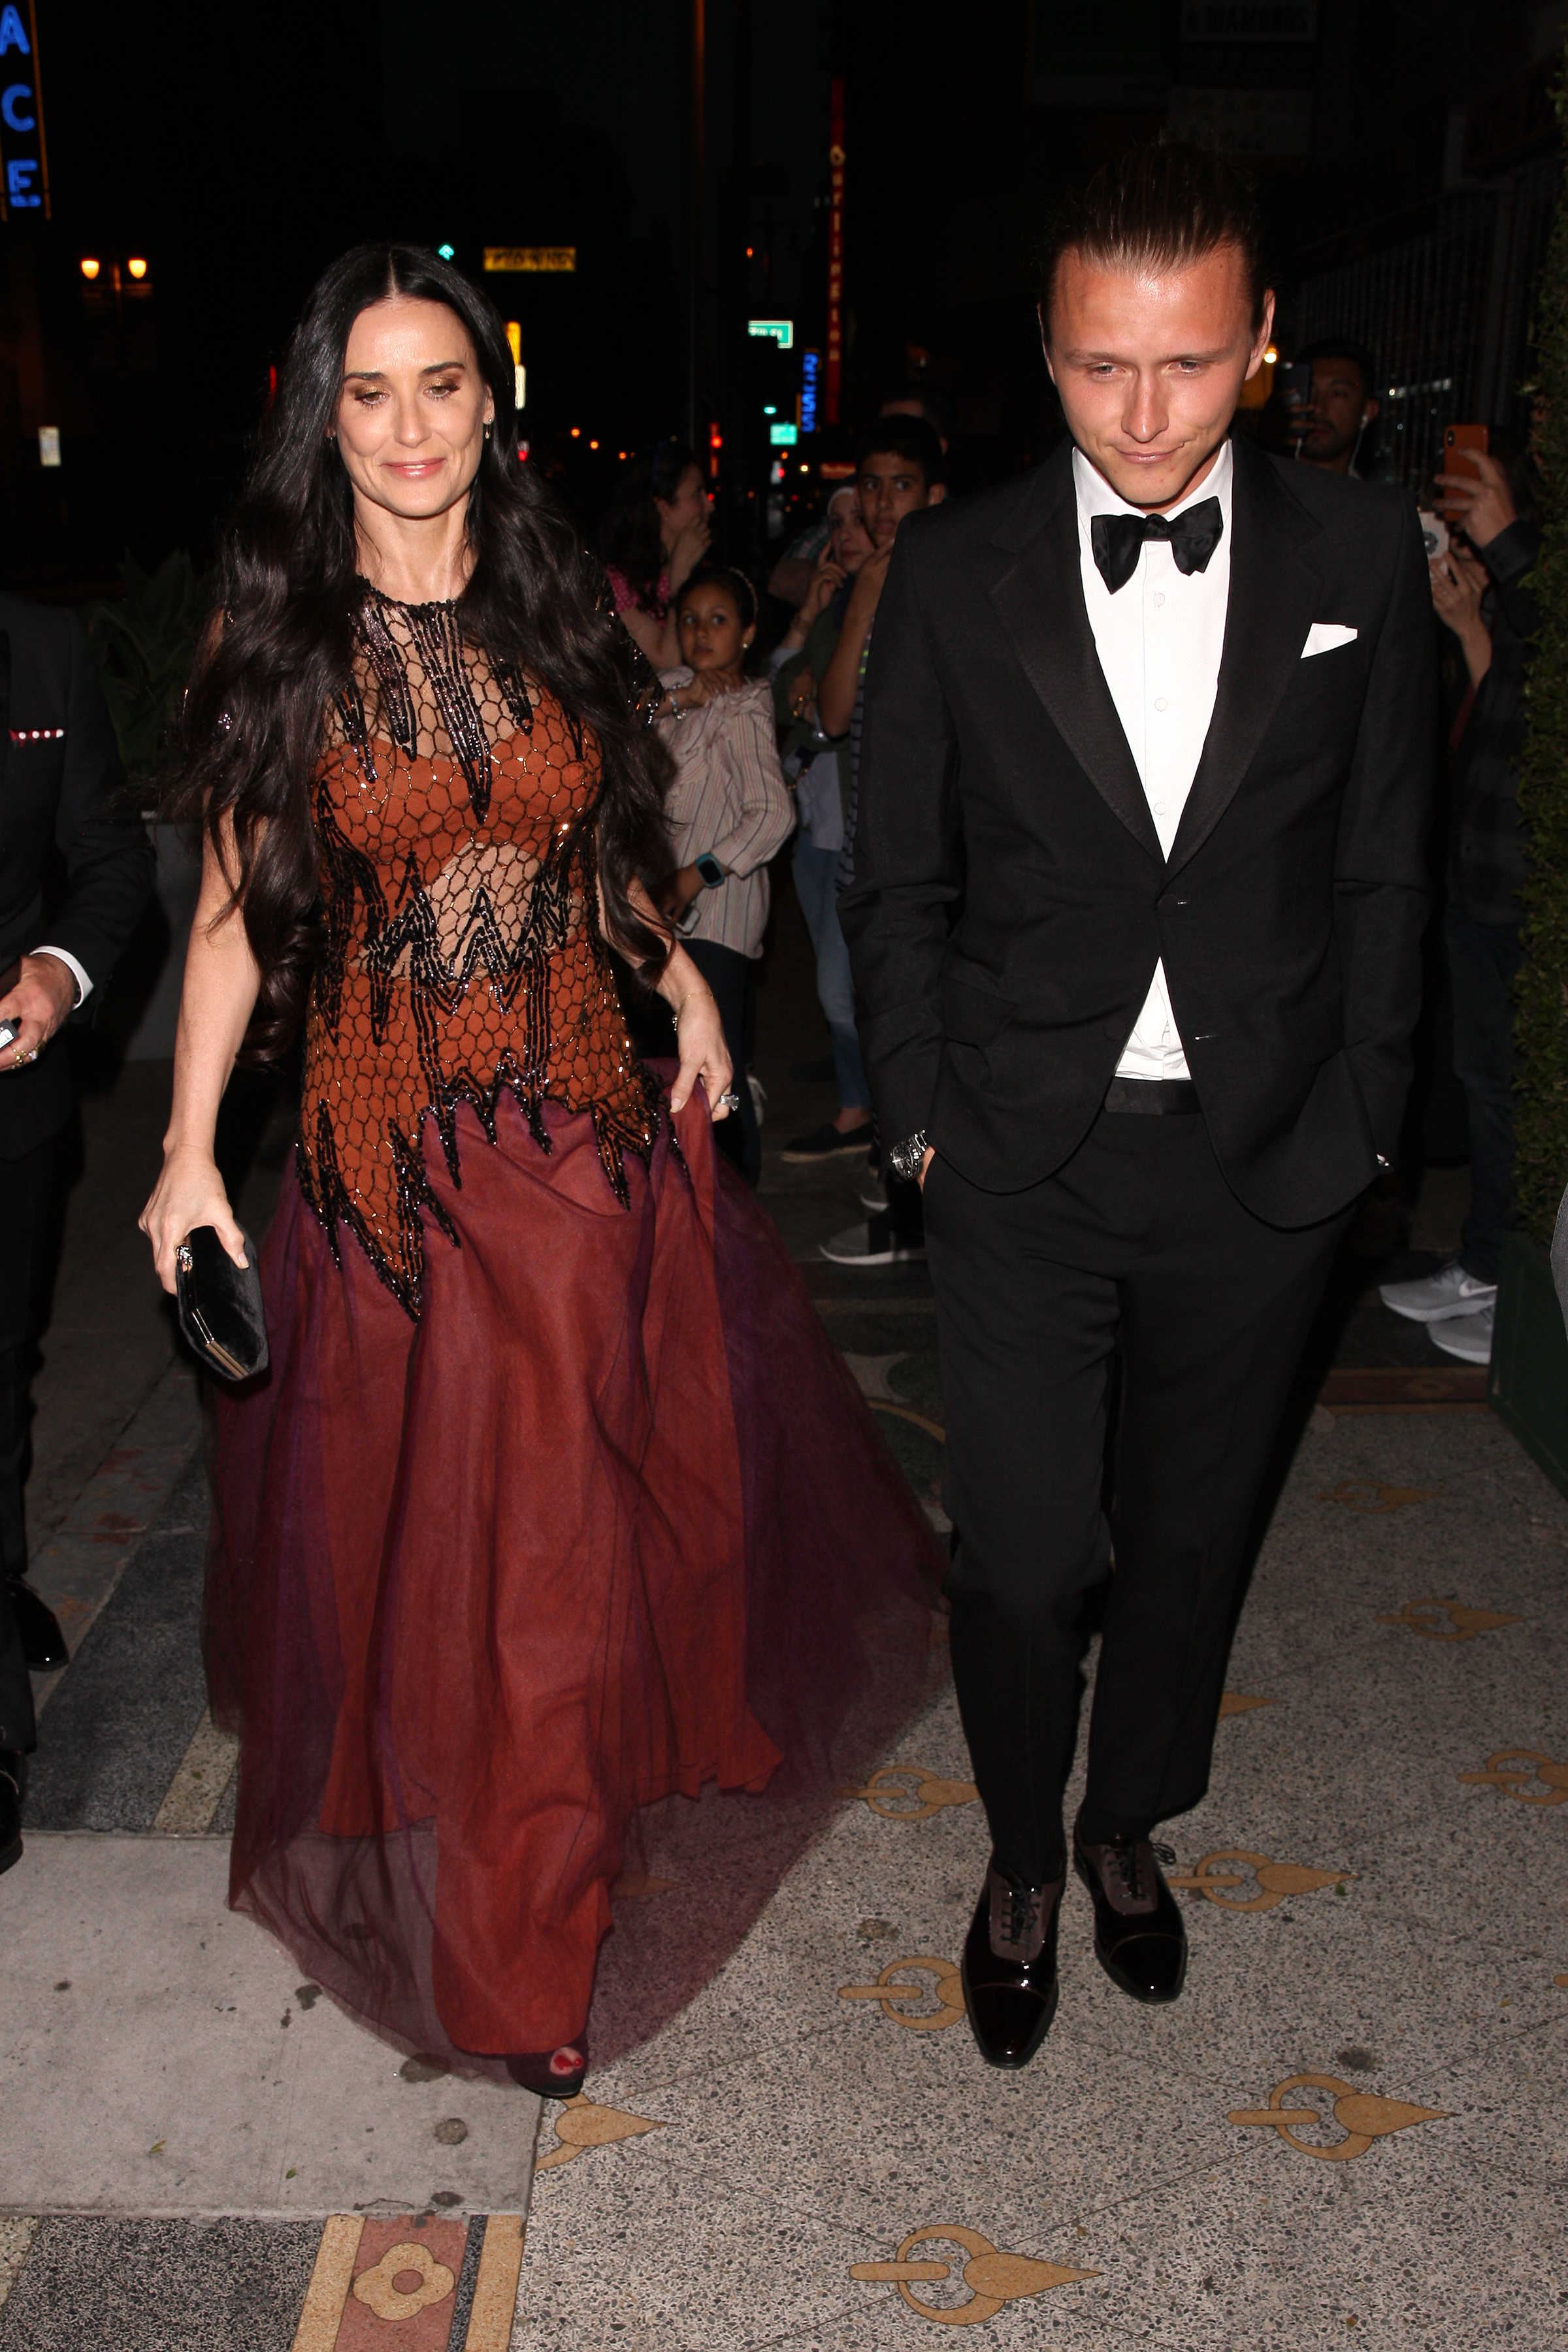 Demi Moore and her boyfriend arrive at Gwyneth Paltrow and Brad Falchuk's engagement party at the Los Angeles Theater in downtown L.A. on April 14, 2018.